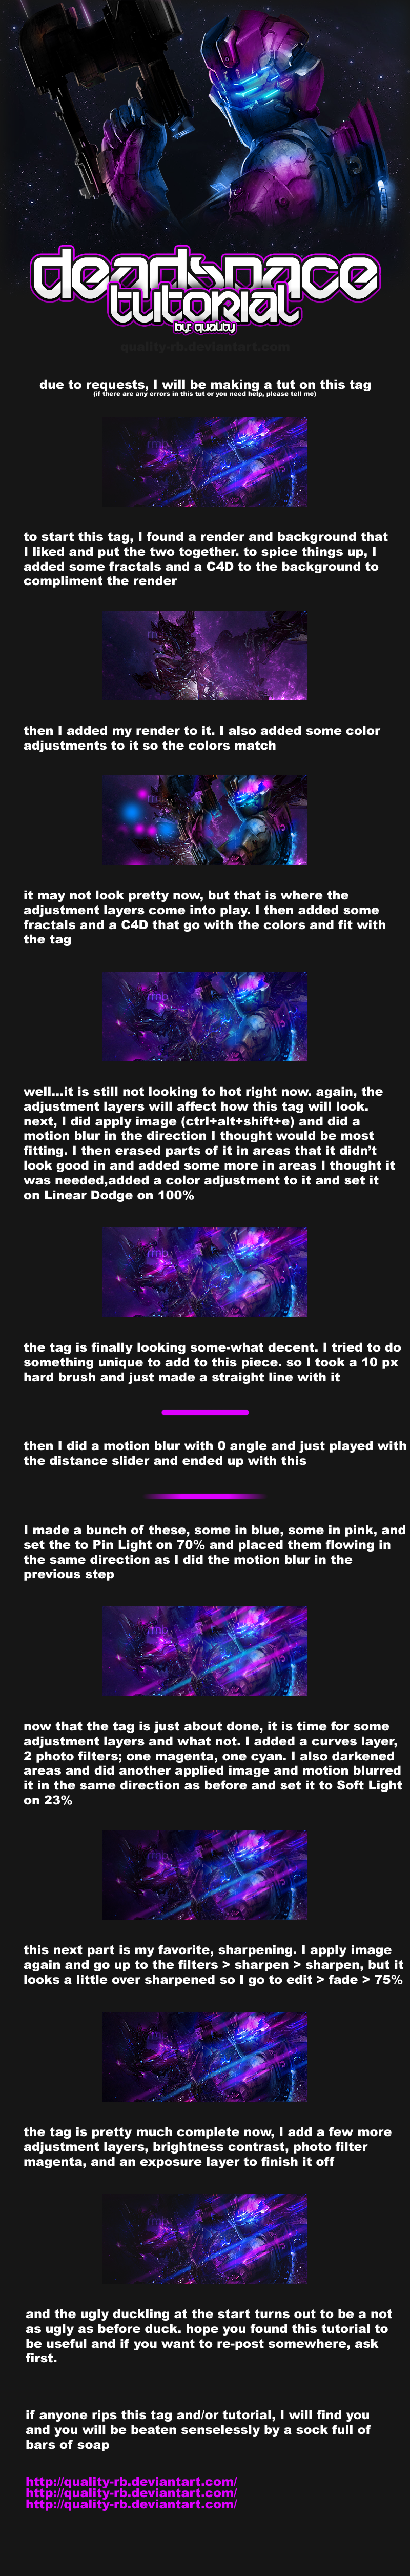 Dead space tutorial 2 by quality rb on deviantart for Space tutorial